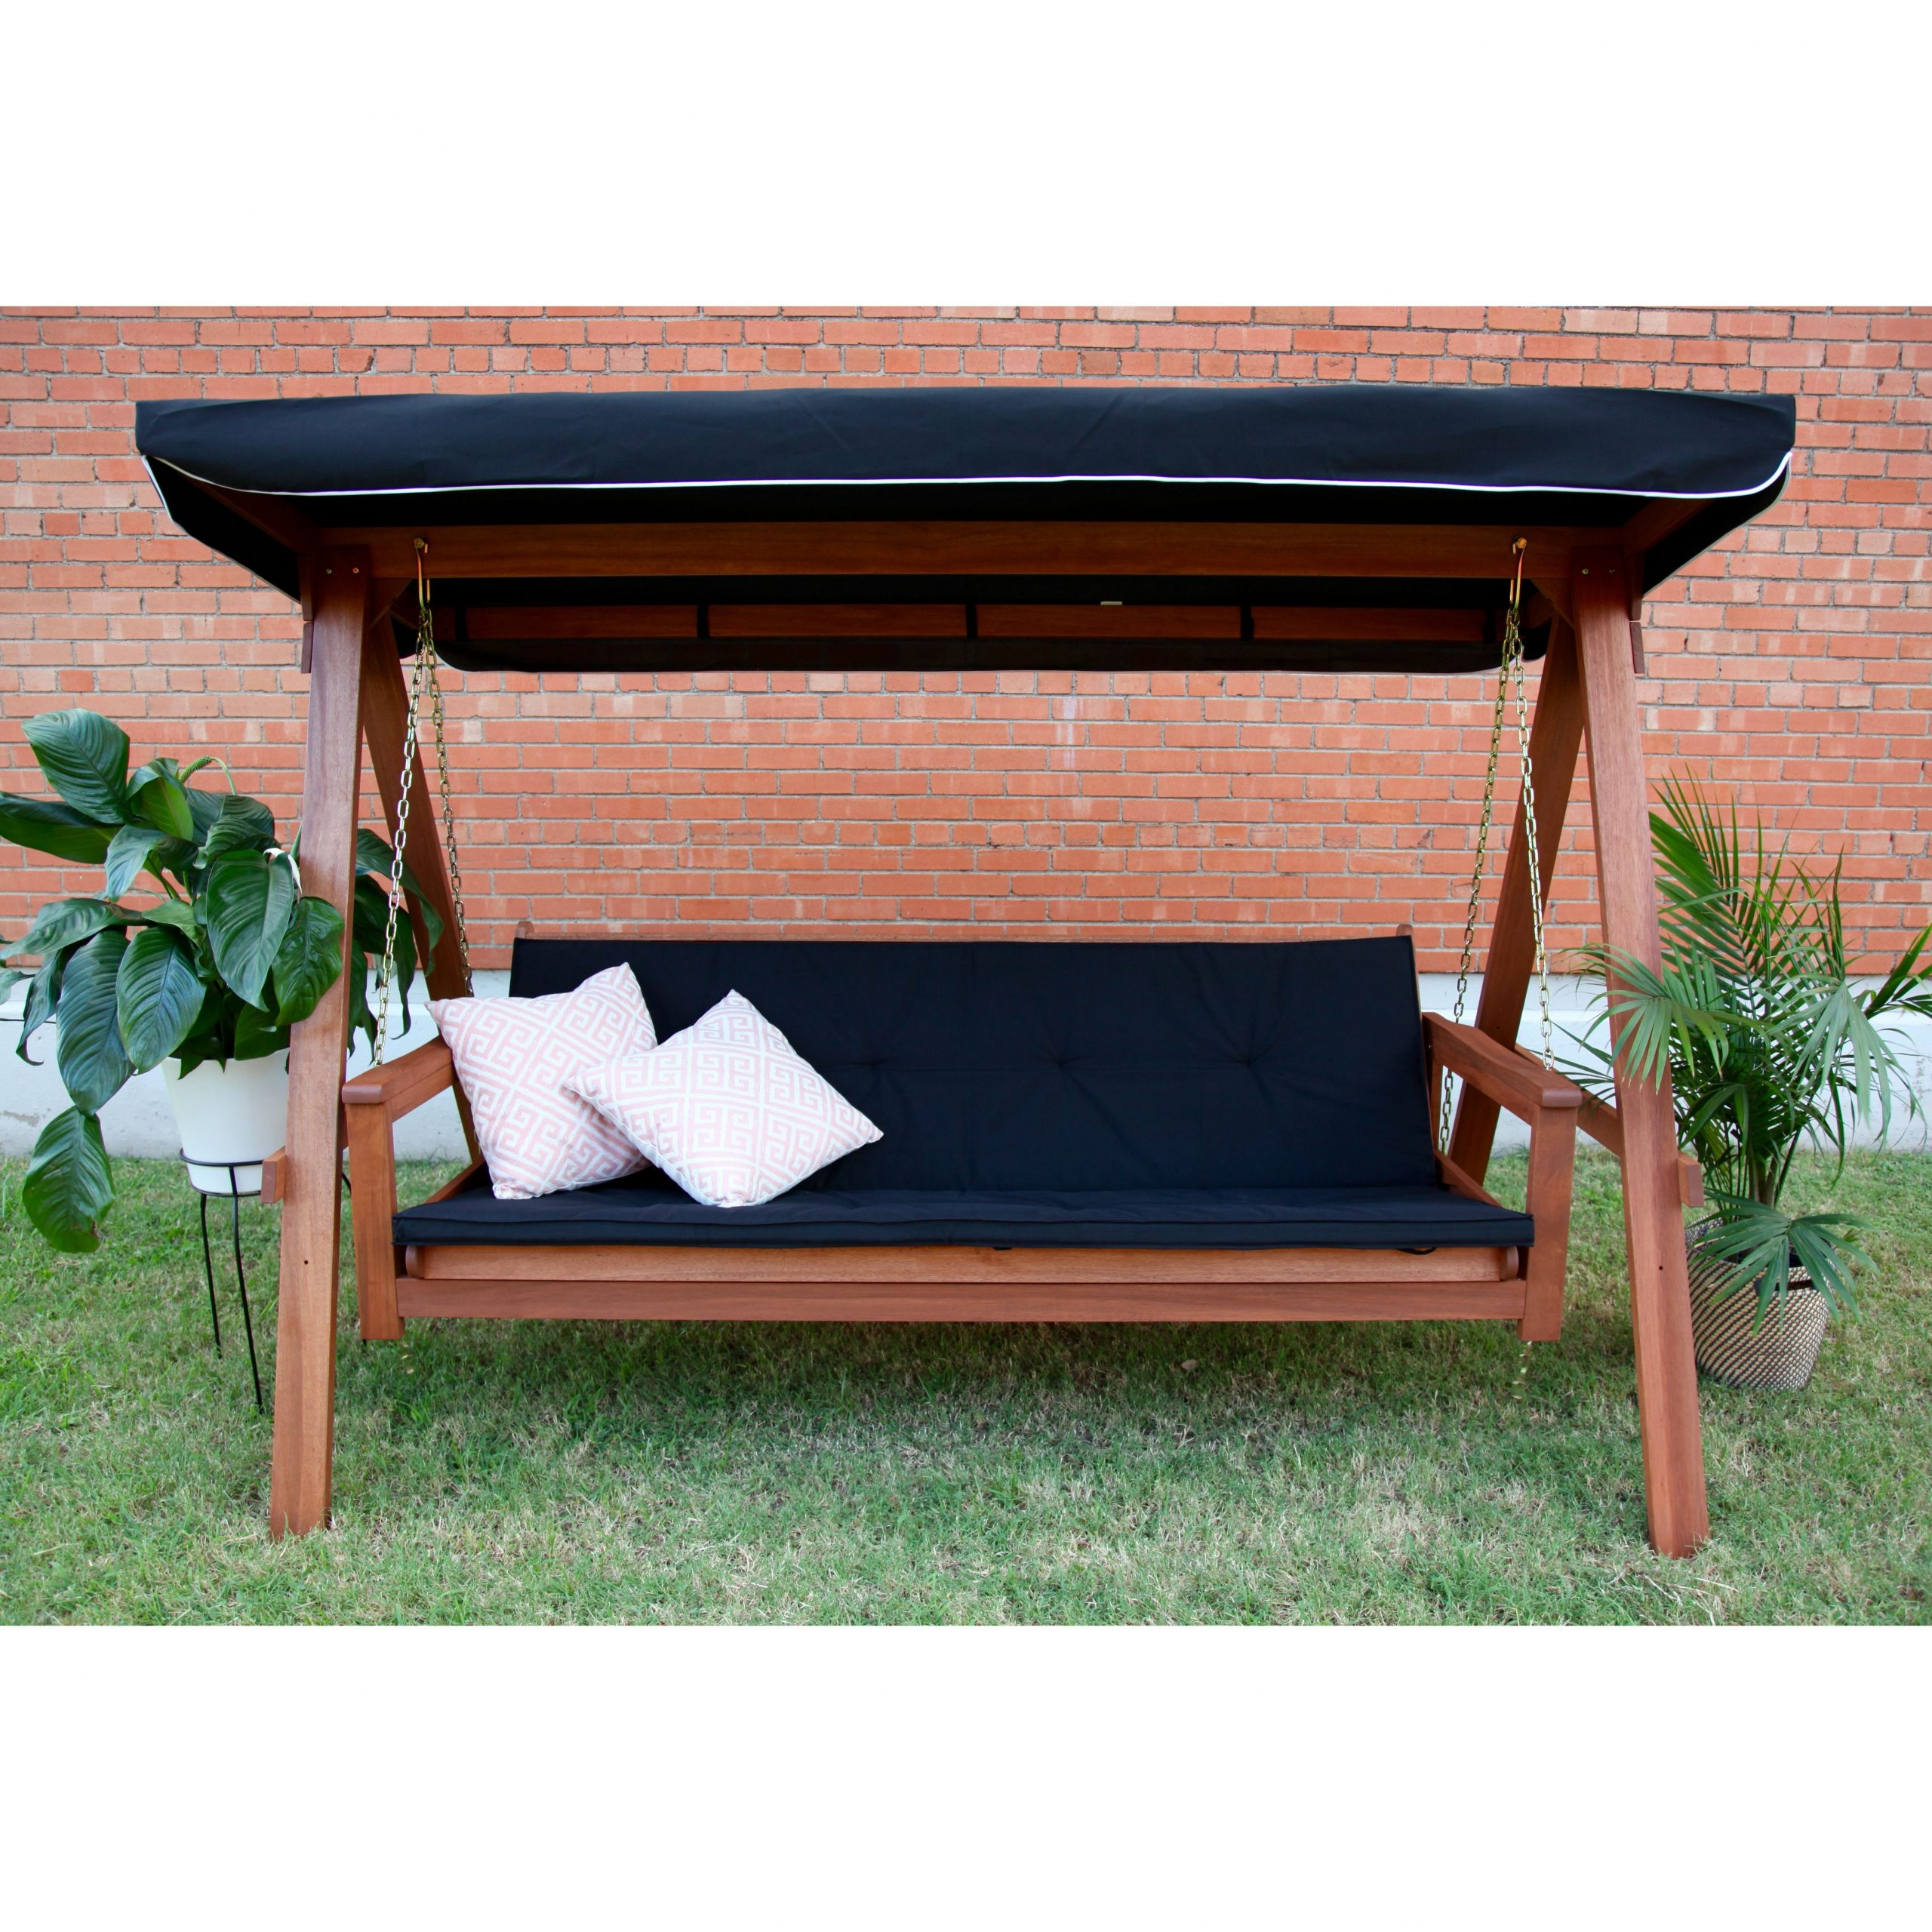 Famous Lautan Llc Avoca 3 Seat Porch Swing Daybed (View 2 of 30)